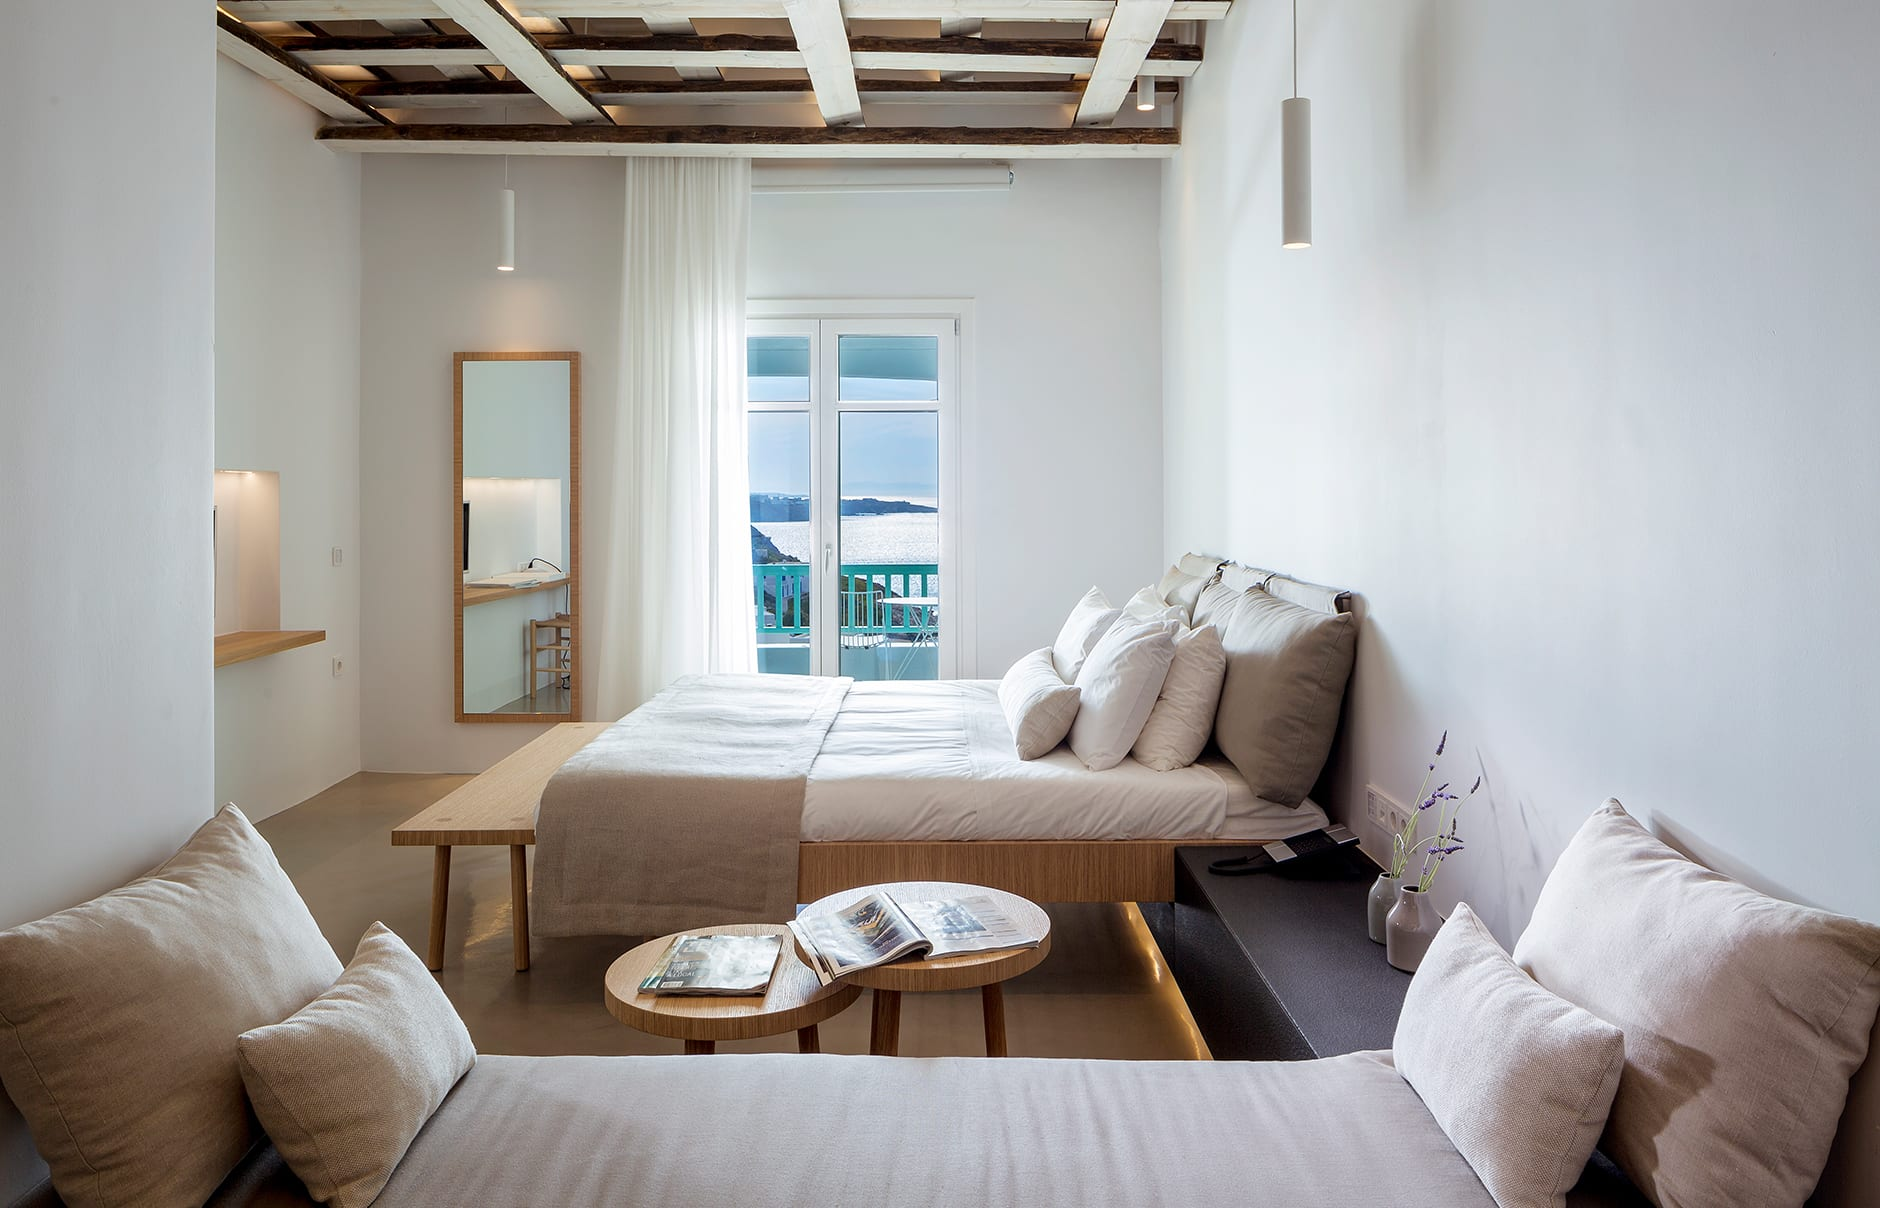 Bachelor Suite. Bill & Coo Mykonos, Greece. Hotel Review by TravelPlusStyle. Photo © Bill & Coo Mykonos